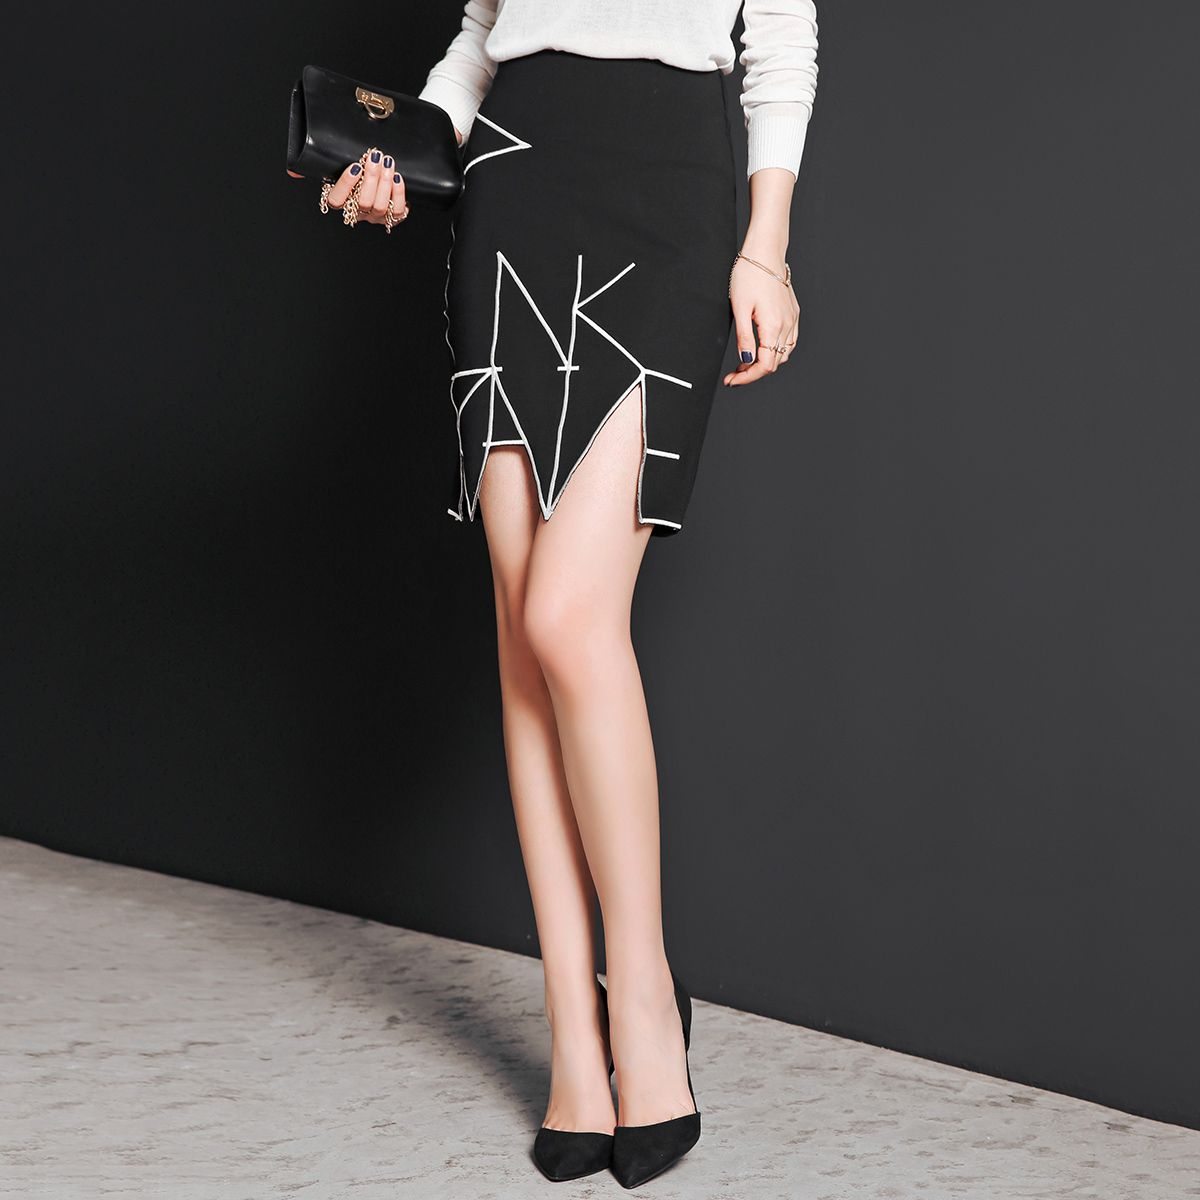 Product Name: PX1035 Asymmetric Pencil Skirt with Piping Detail Click On Link To View This Product : http://gurusing.sg/product/px1035-asymmetric-pencil-skirt-with-piping-detail/. We Have Publish More Products And Special Offer Are Going On Our Website GuruSing. Hurry Enjoy Up To 80% Discounts......